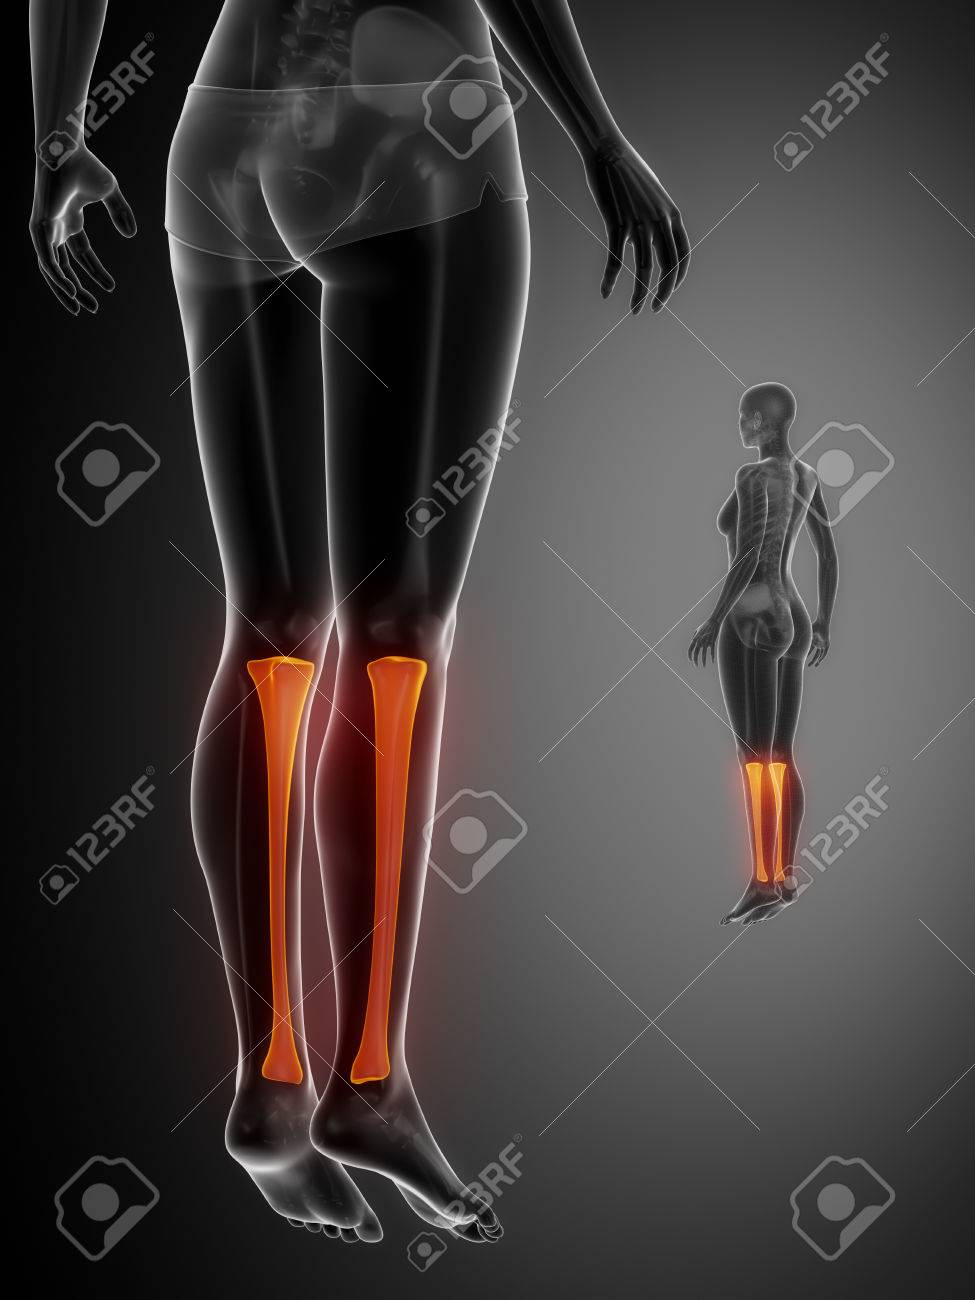 Tibia Anatomy Medical Scan Stock Photo, Picture And Royalty Free ...